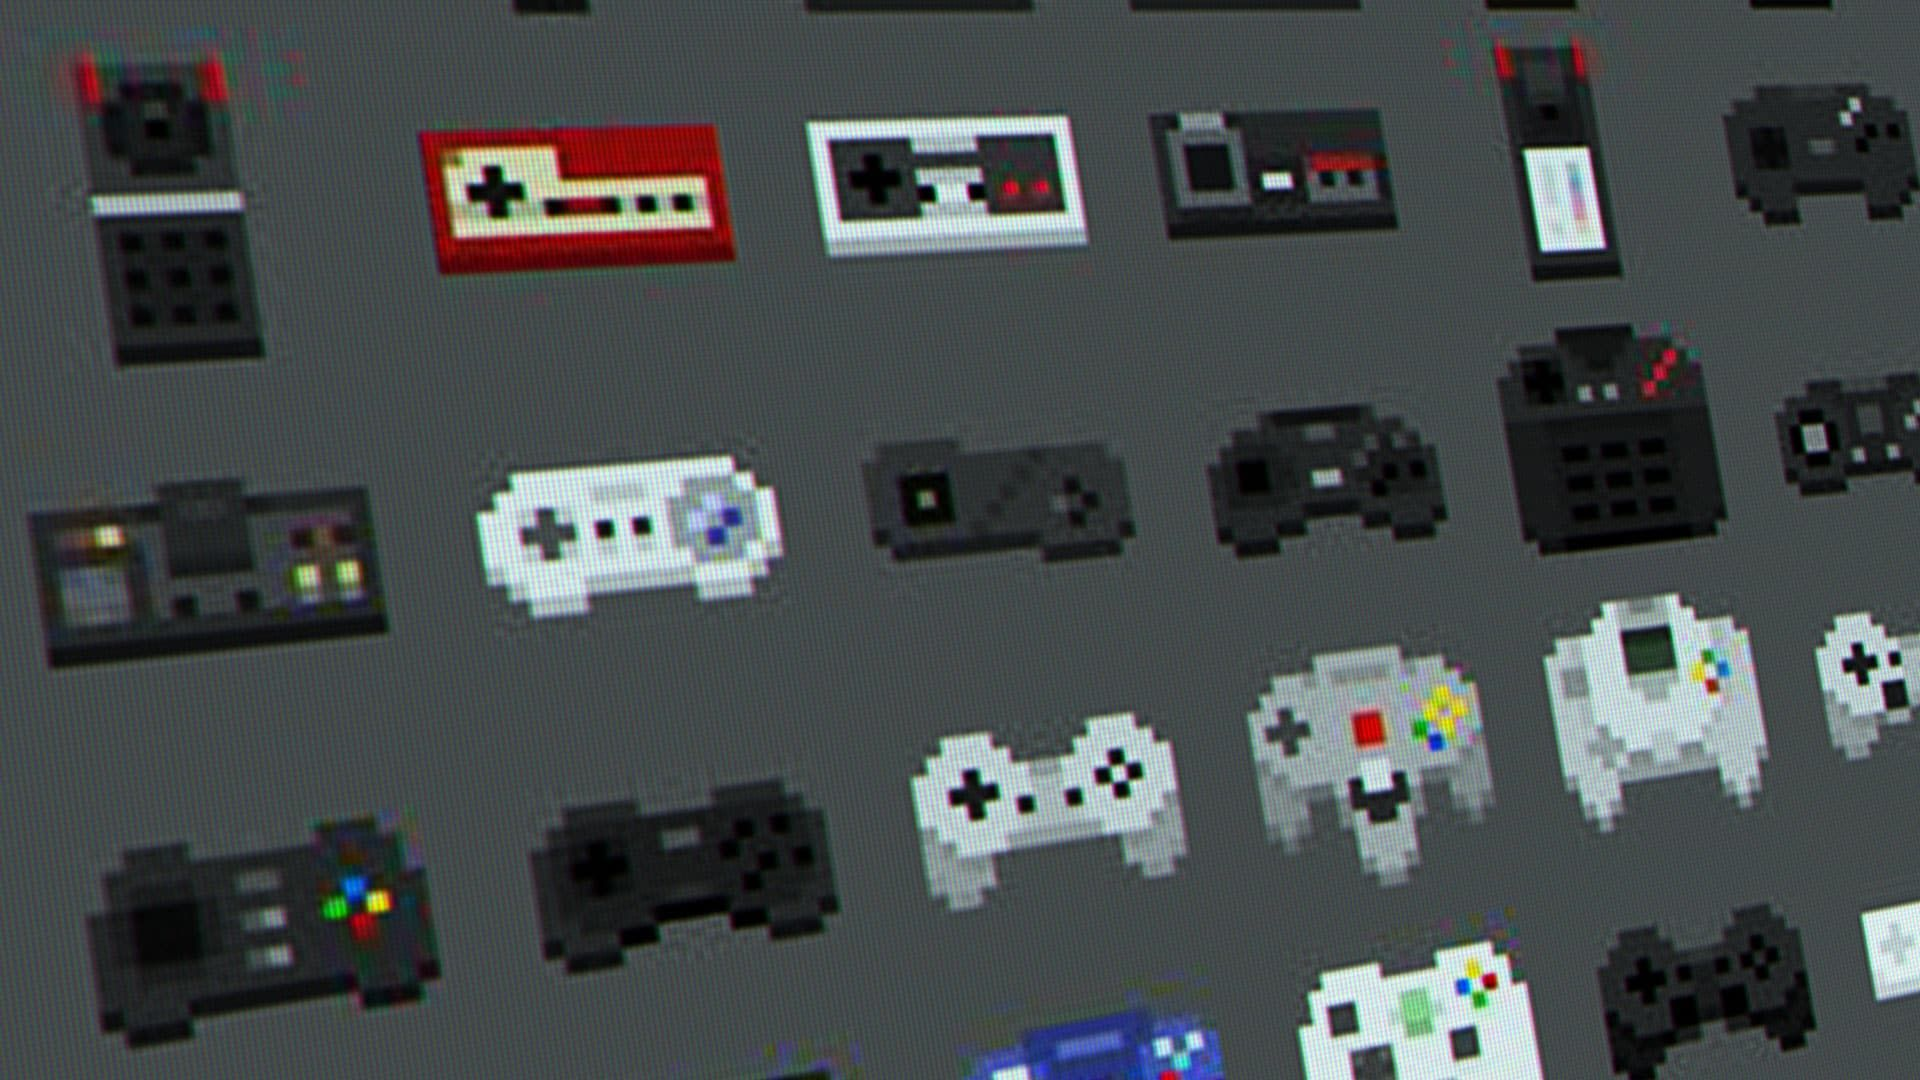 Retro Games Controller List - For RetroPie & Raspberry Pi